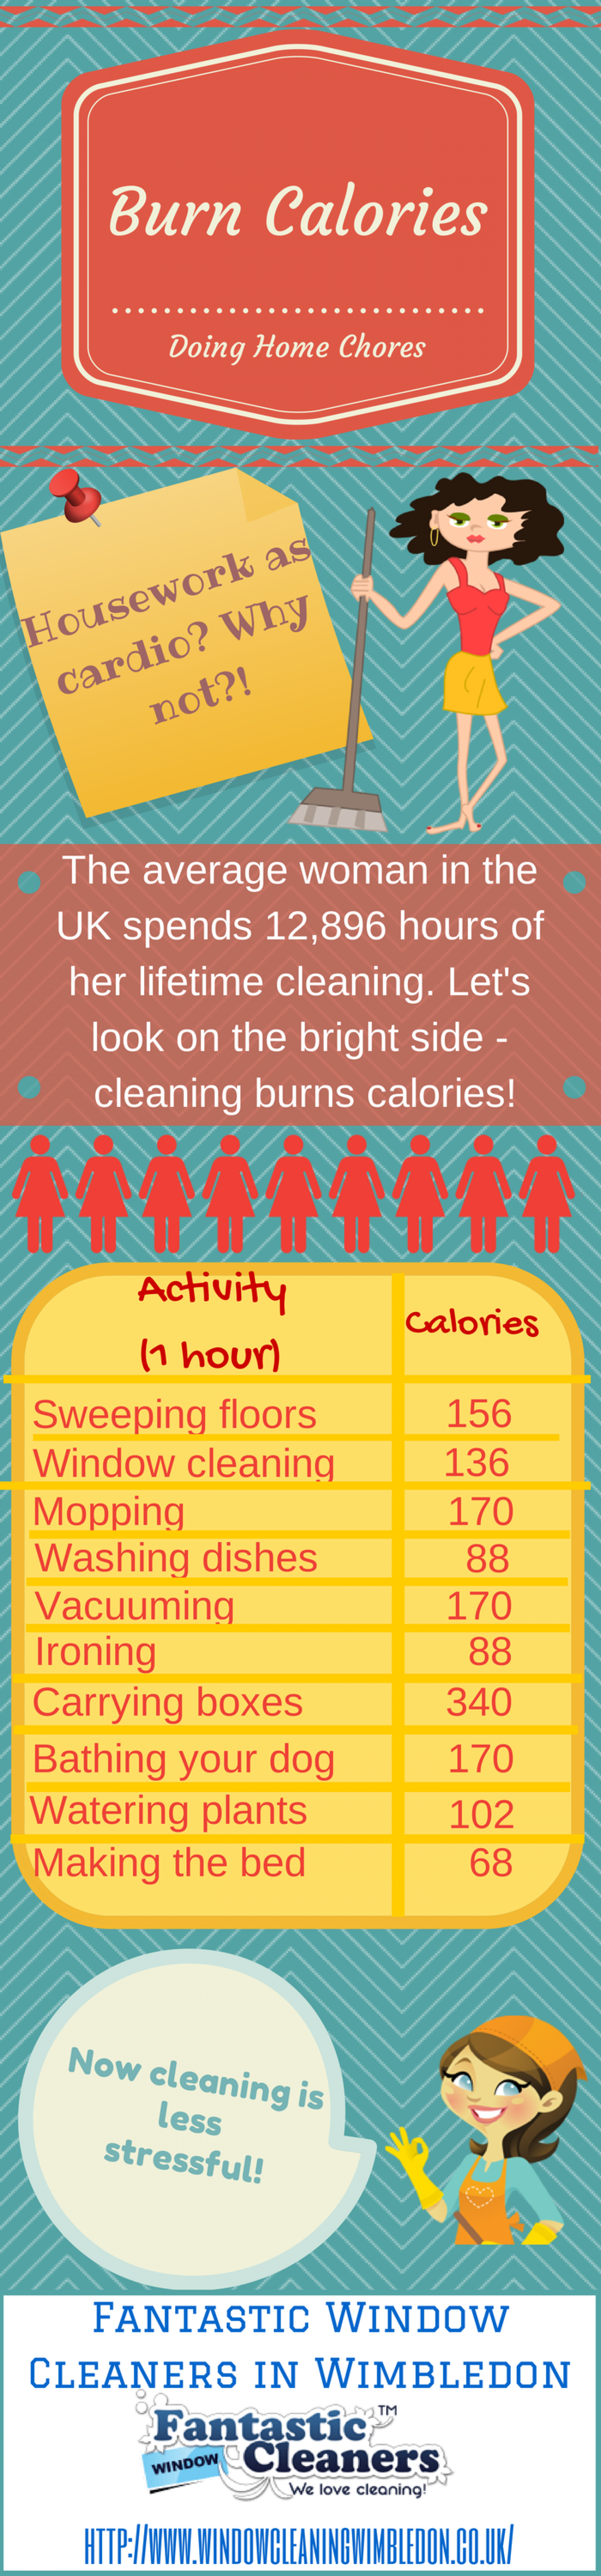 Burn Calories Doing Home Chores Infographic